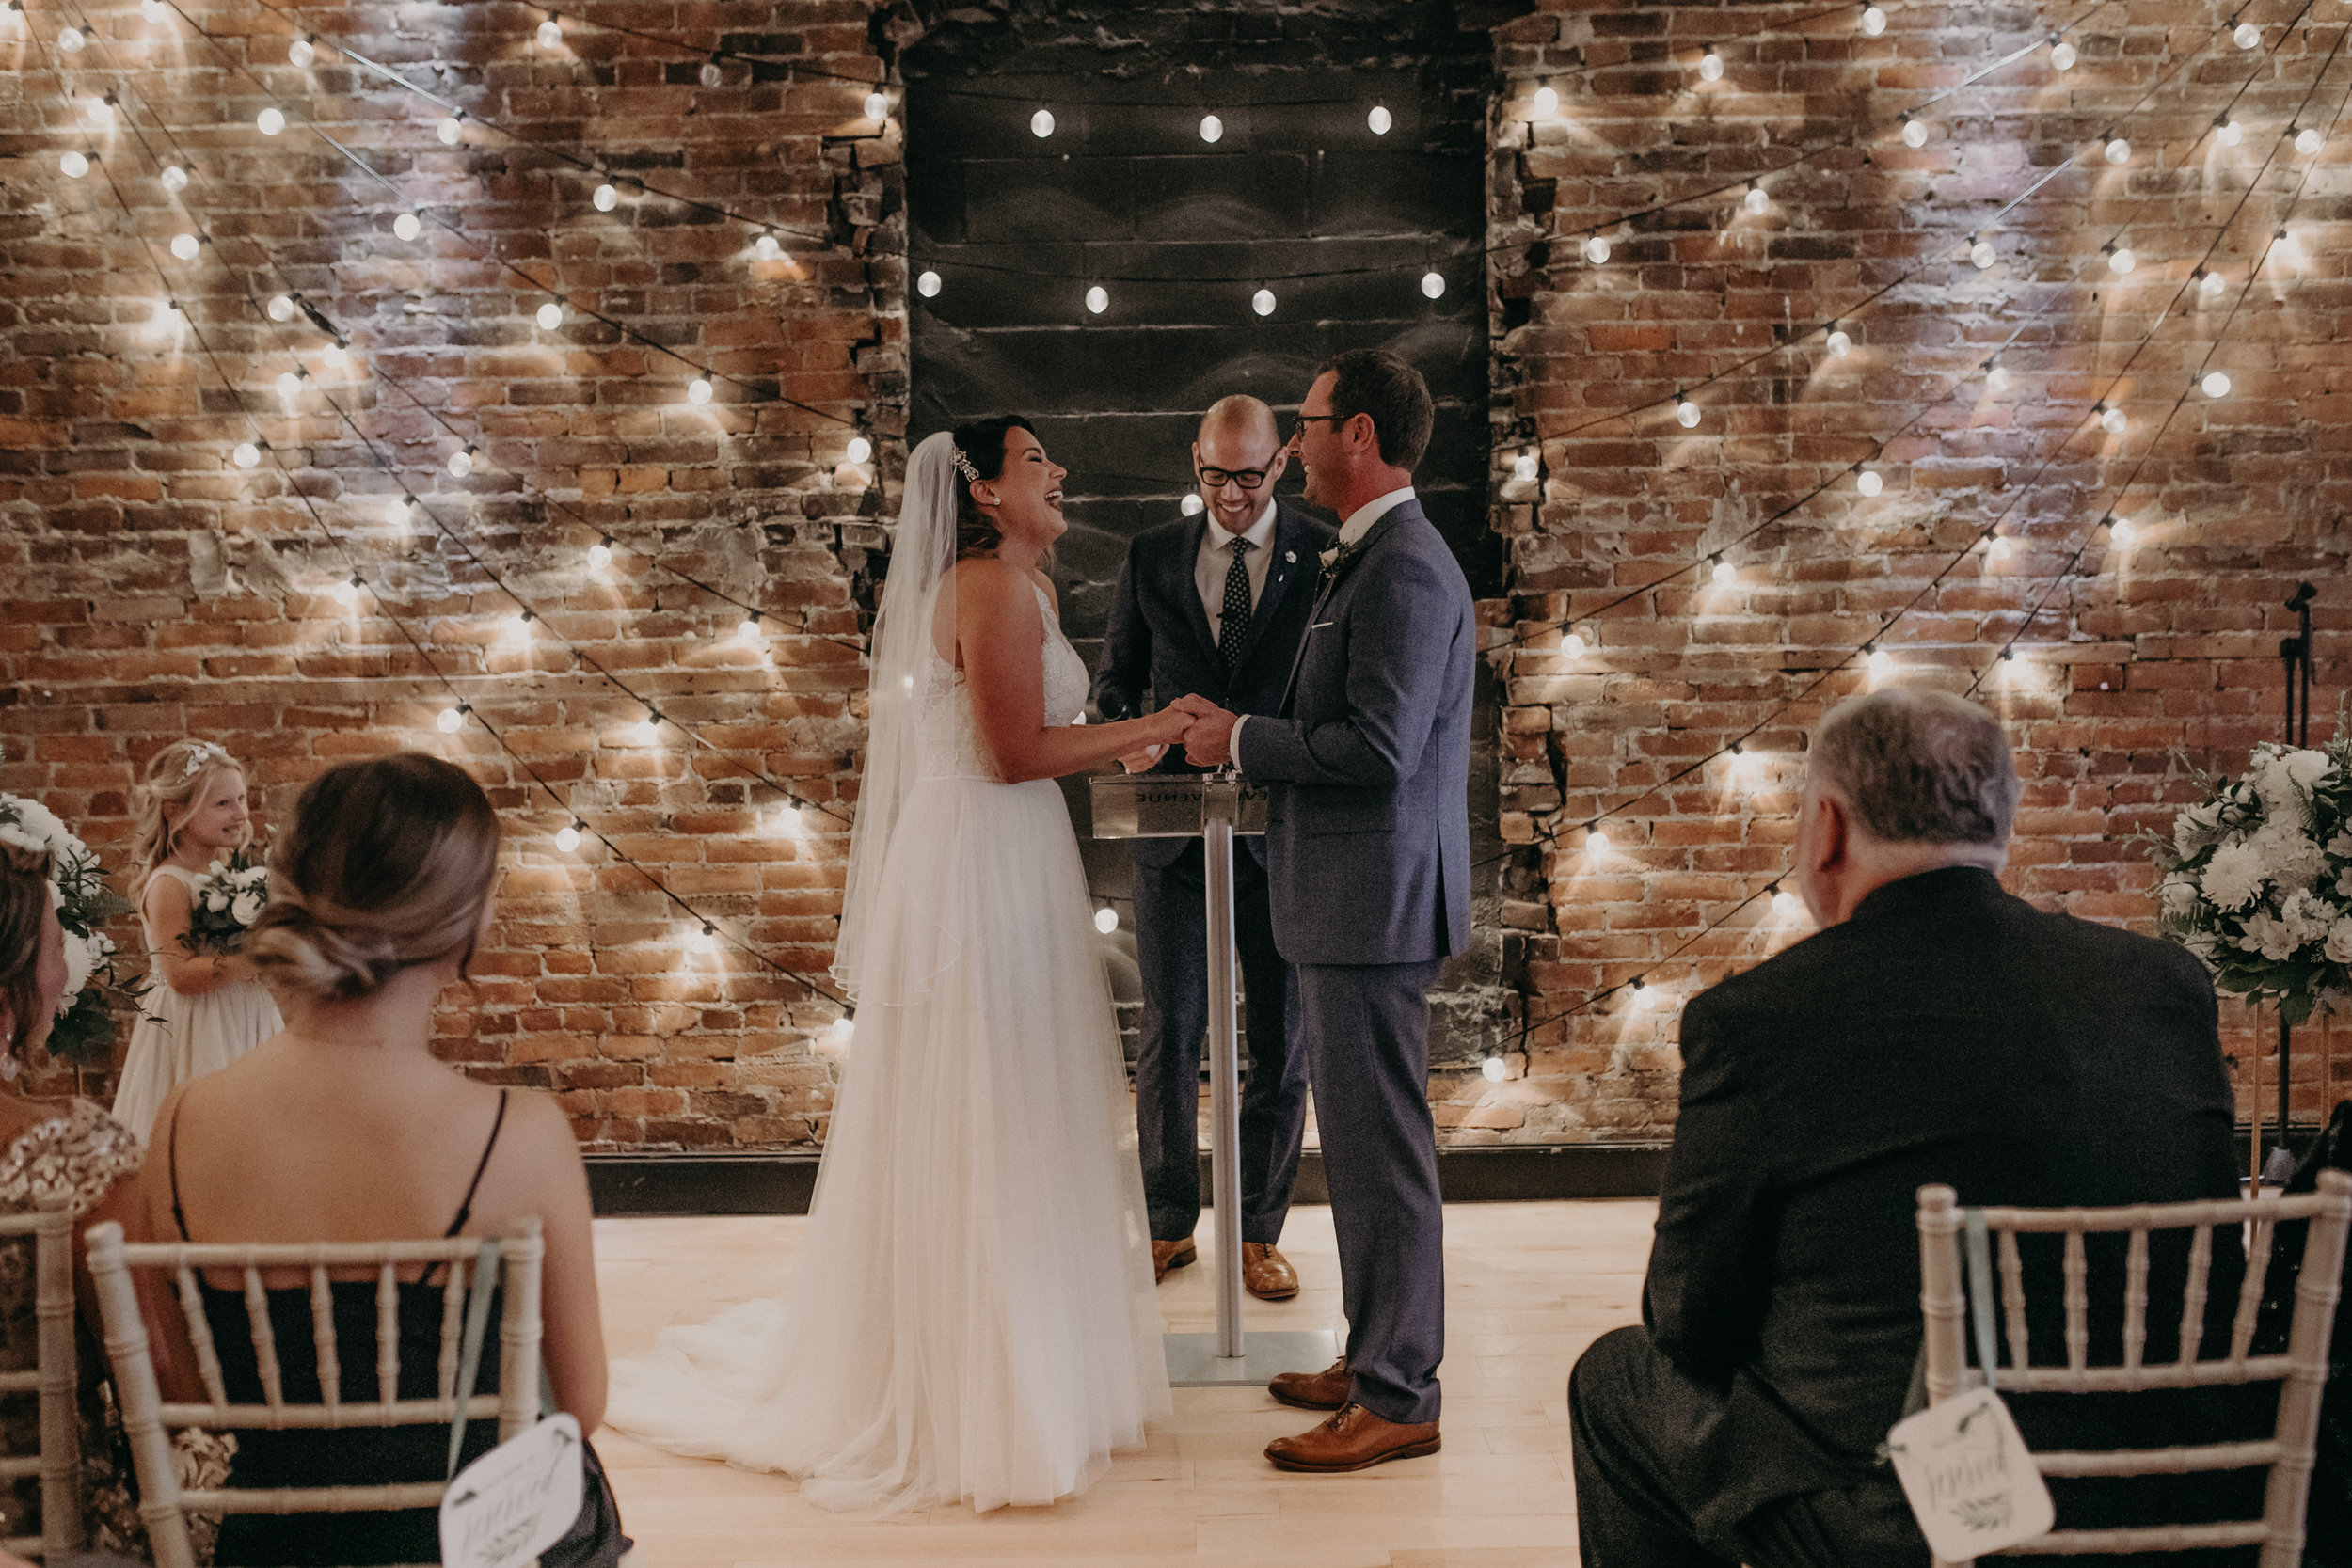 October wedding ceremony at The Loft at Studio J captured by Andrea Wagner photography